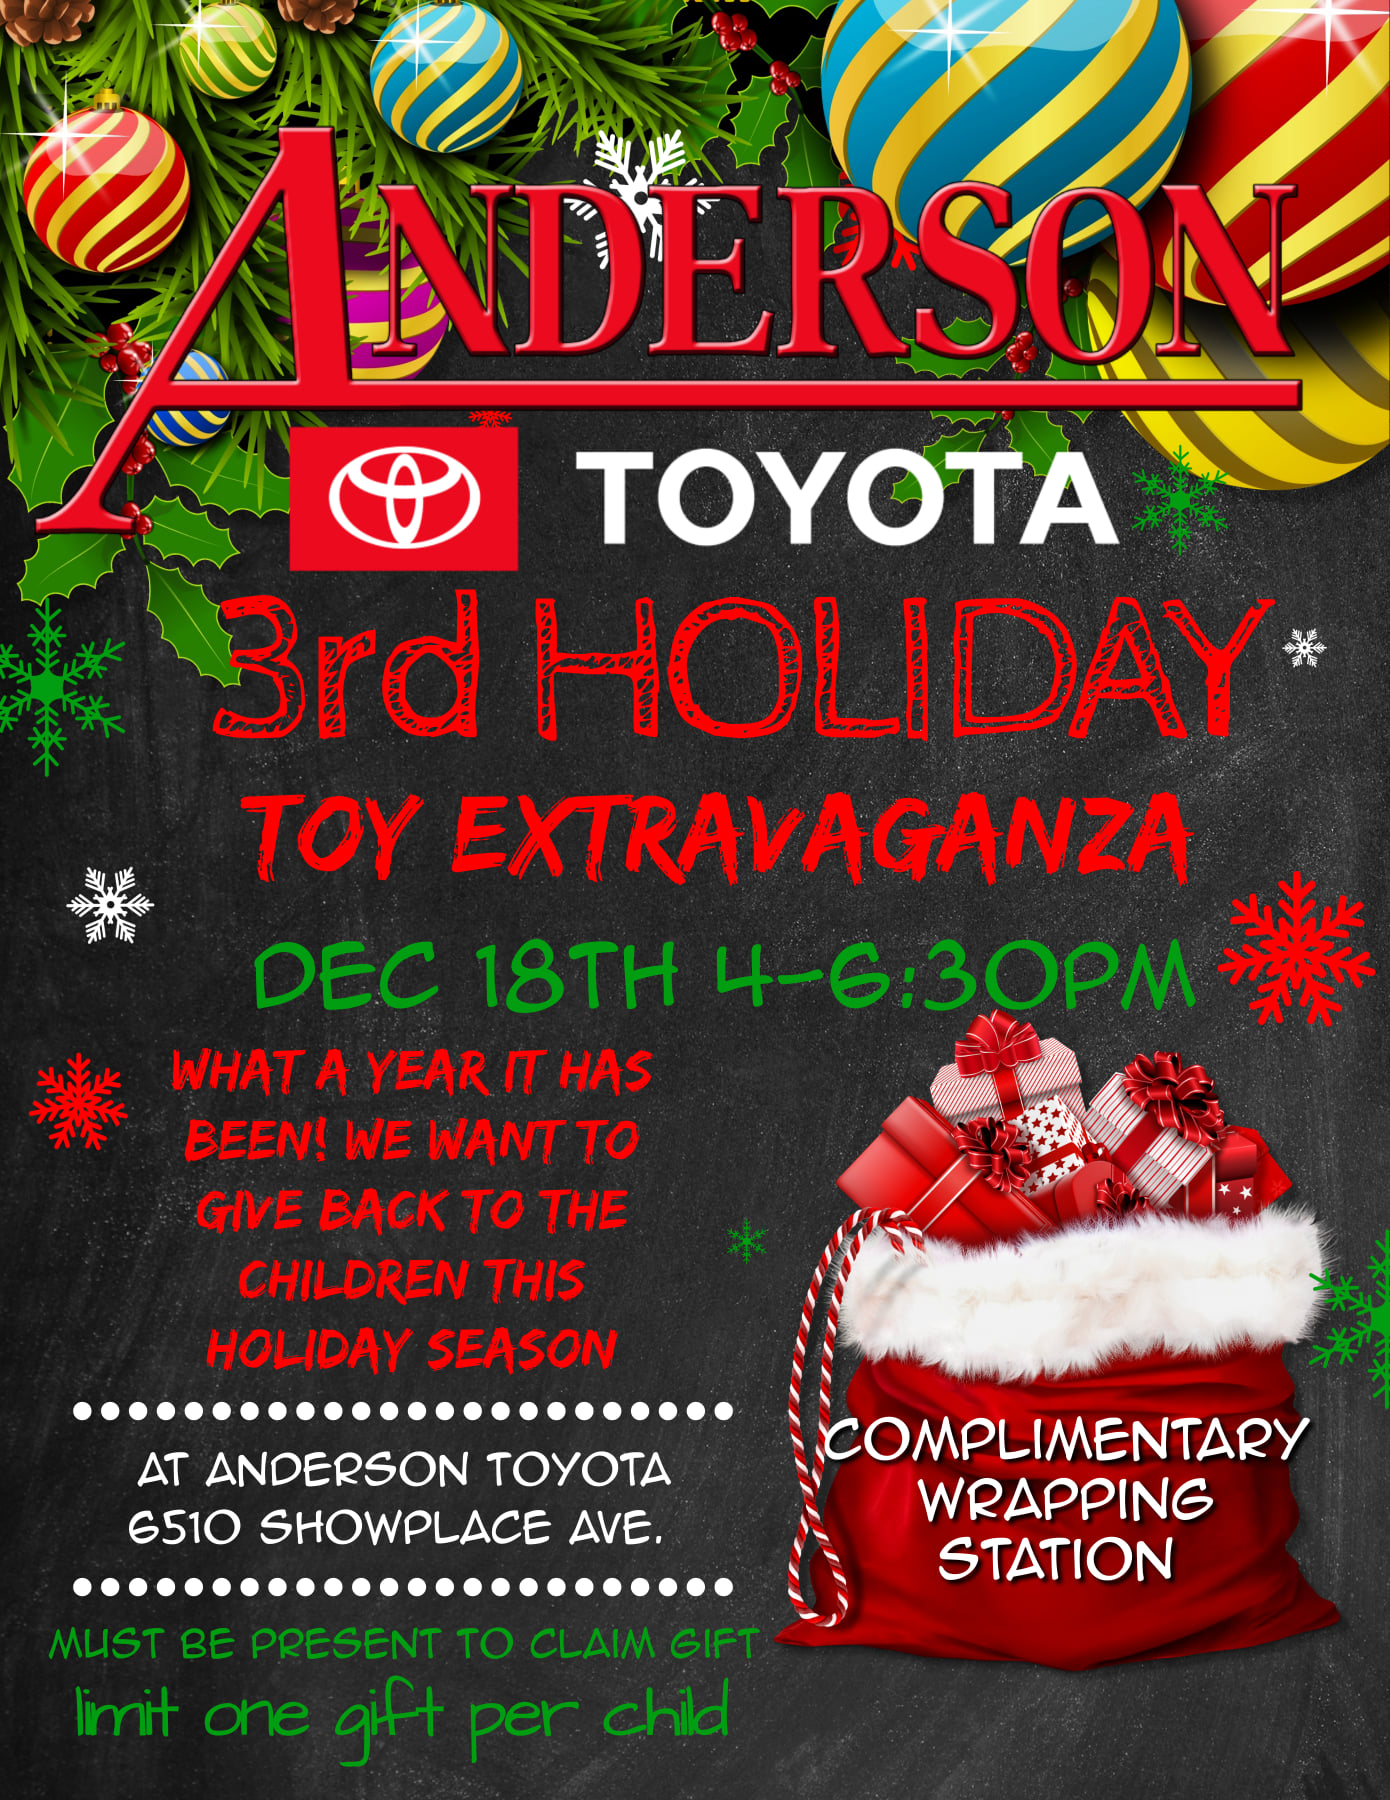 Anderson Toyota Toy Giveaway